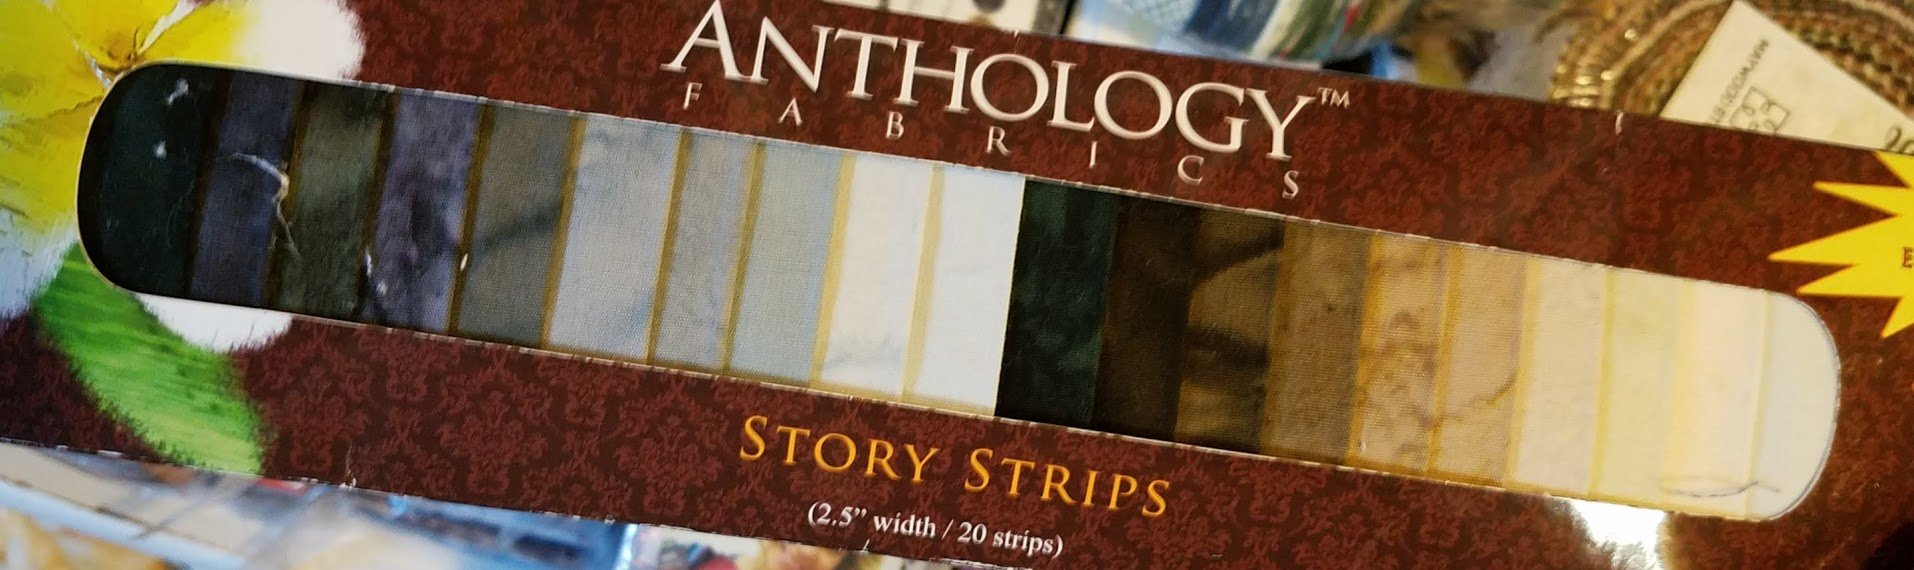 Anthology Story Strips - 20 pieces